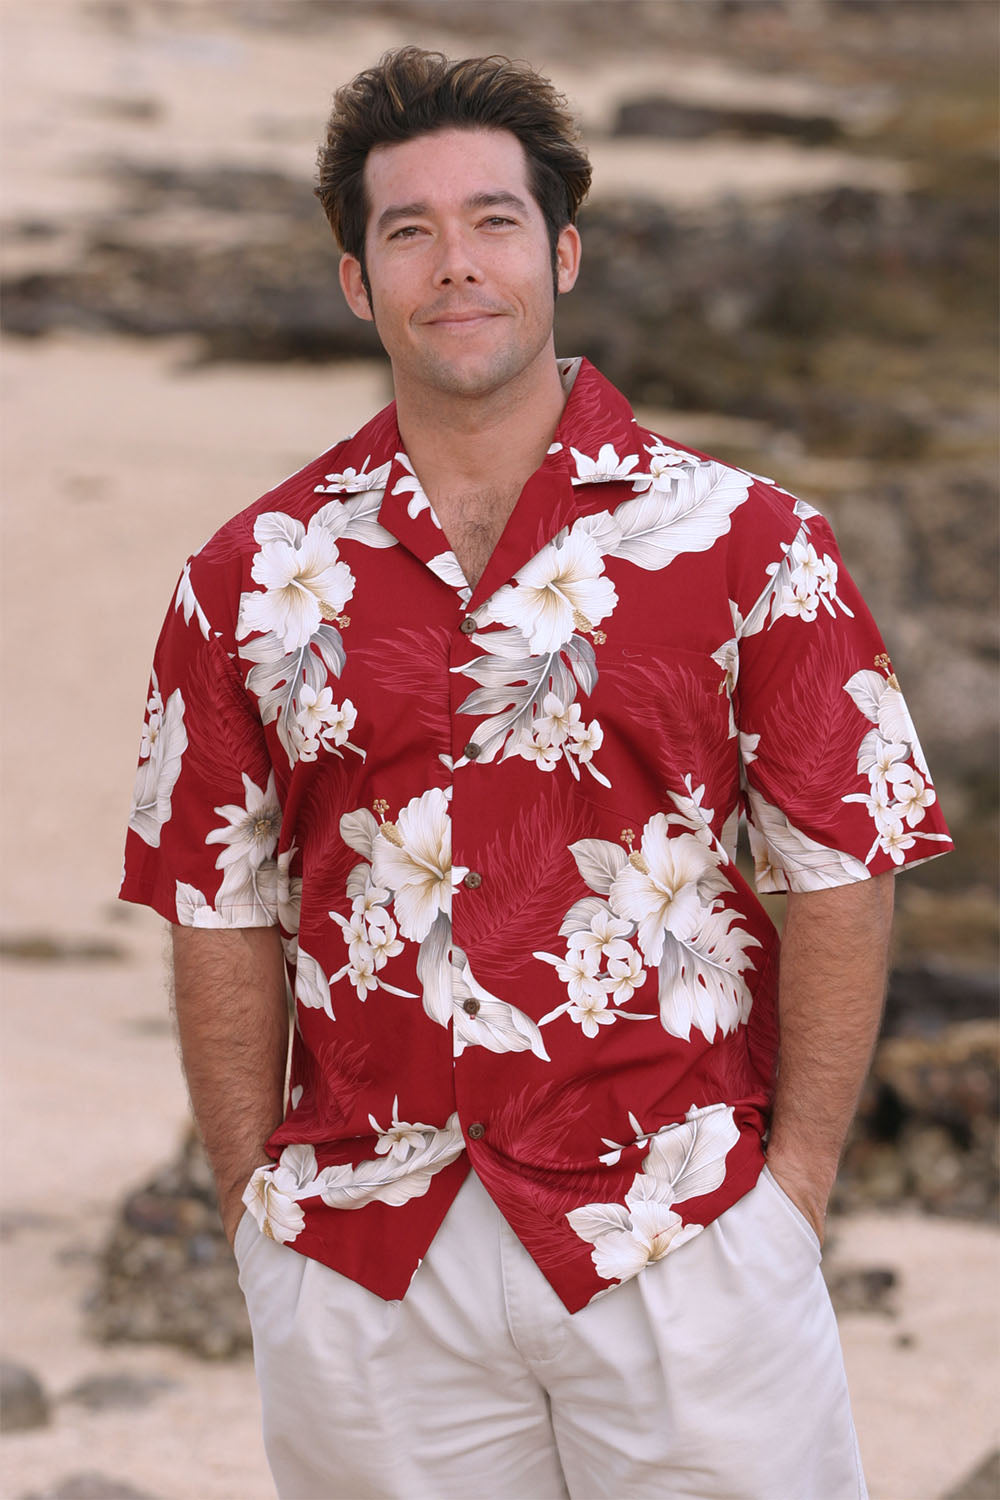 Dave in red 100% cotton Floral Garden Hawaiian shirt